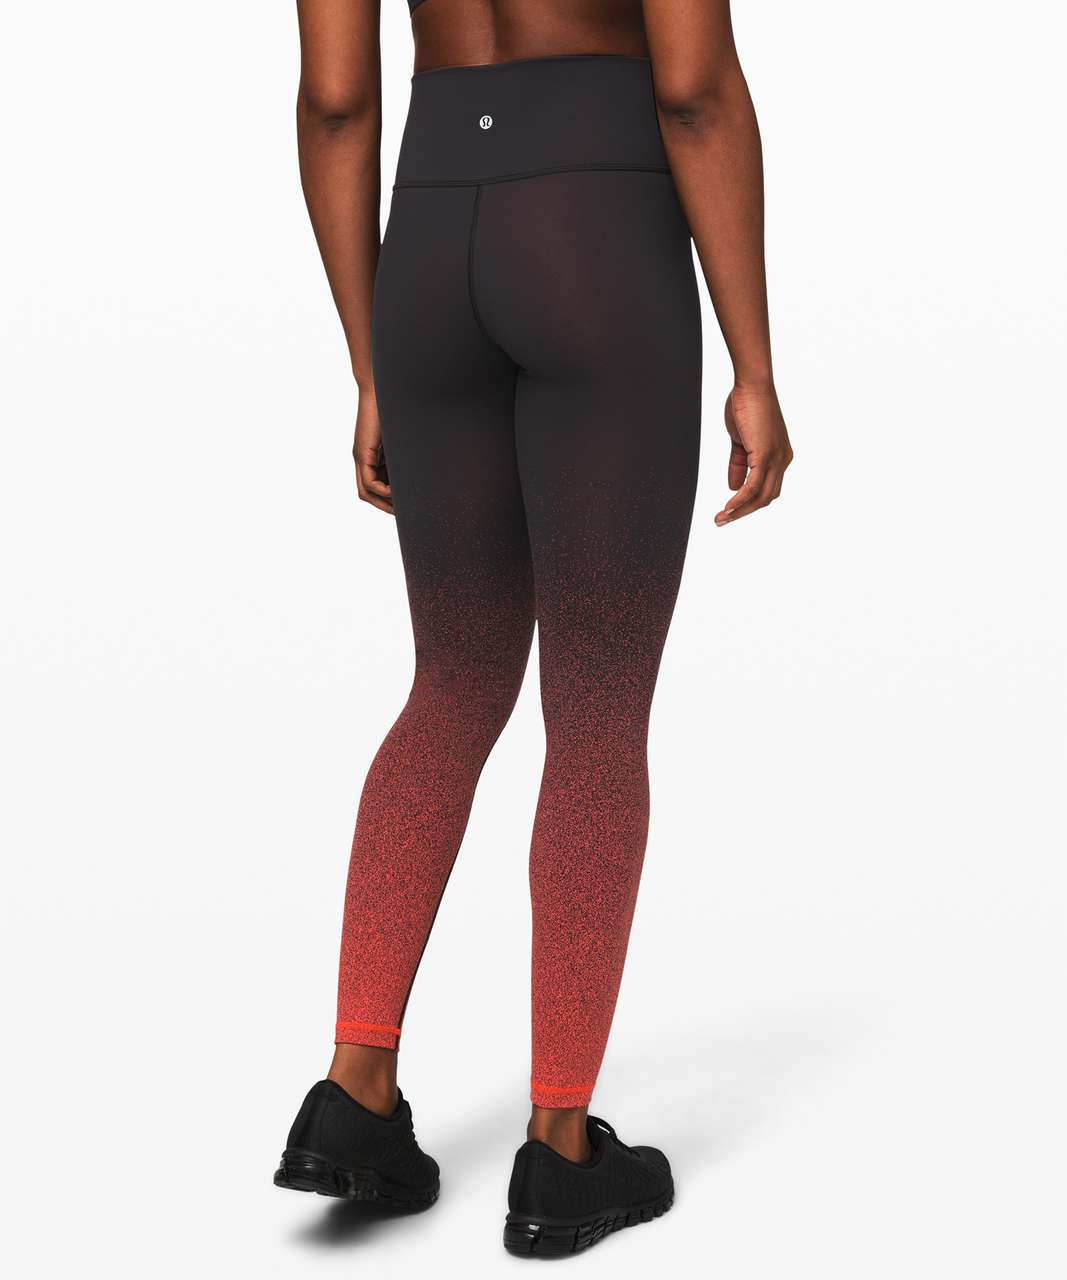 "Lululemon Wunder Under High-Rise Tight (Ombre Speckle) *Full-On Luon 28"" - Ombre Speckle Stop Jacquard WUHR Black Thermal Red"